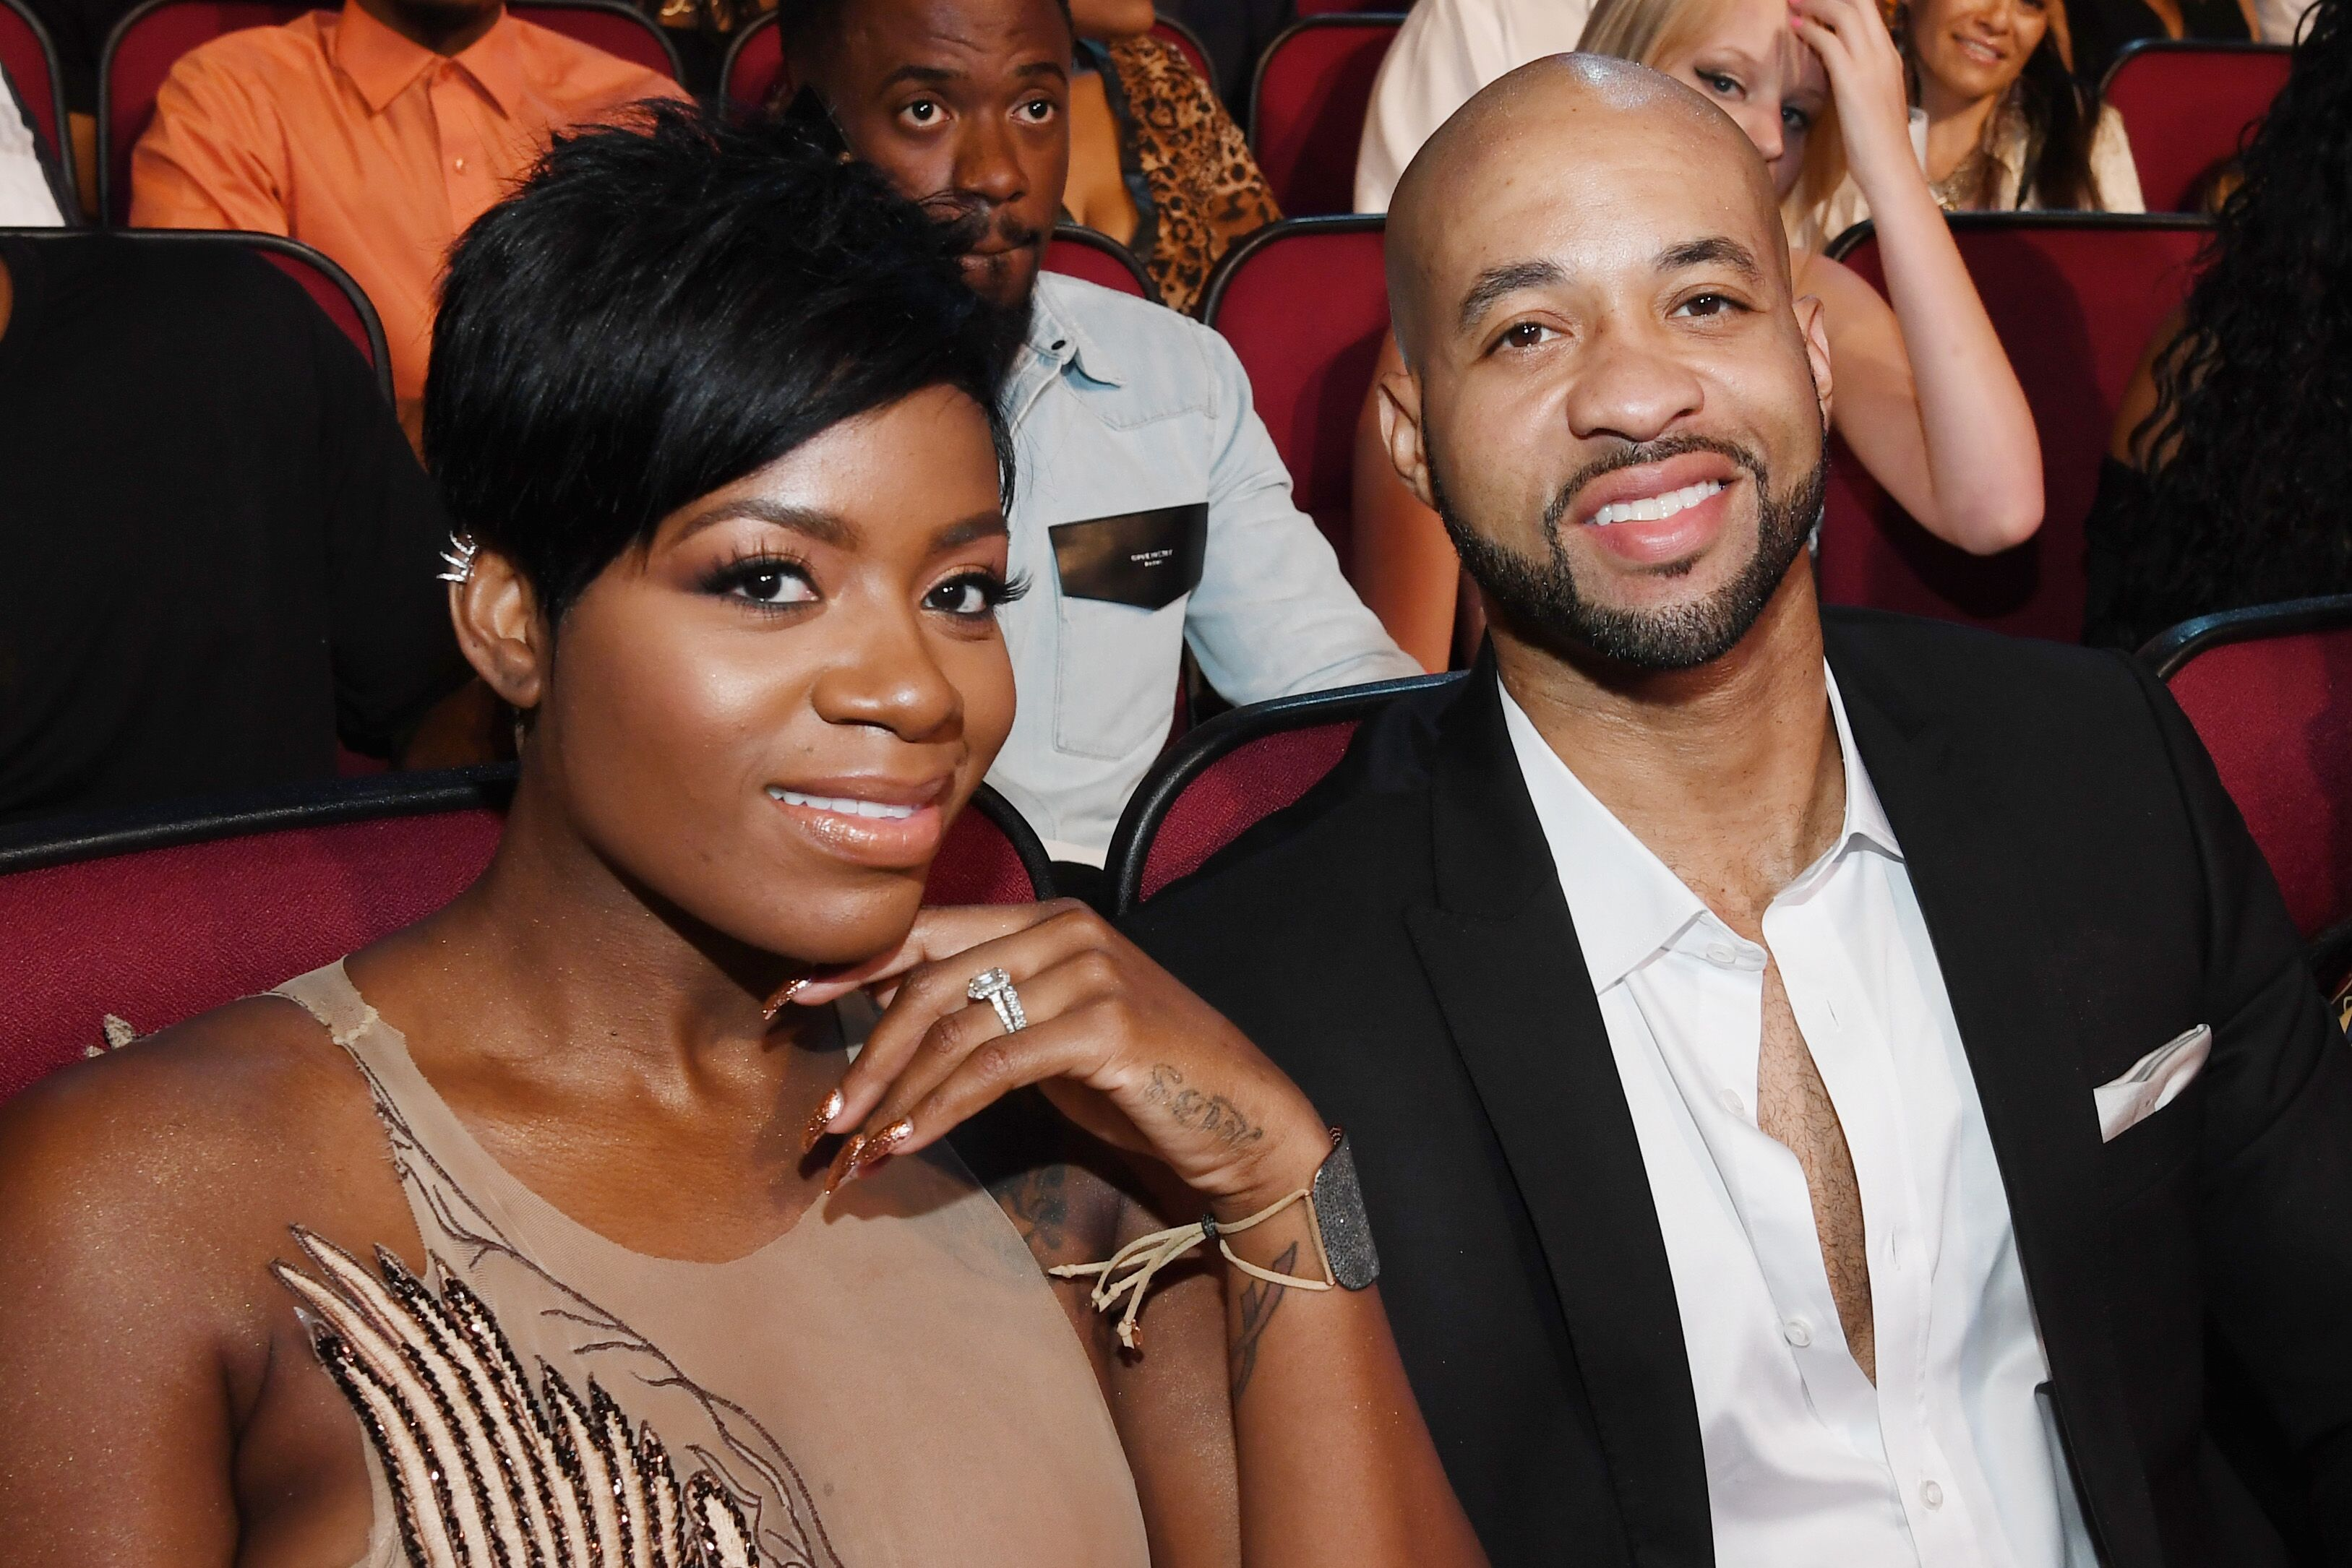 Fantasia Barrino & her husband Kendall Taylor at the BET Awards in 2016 in California   Source: Getty Images